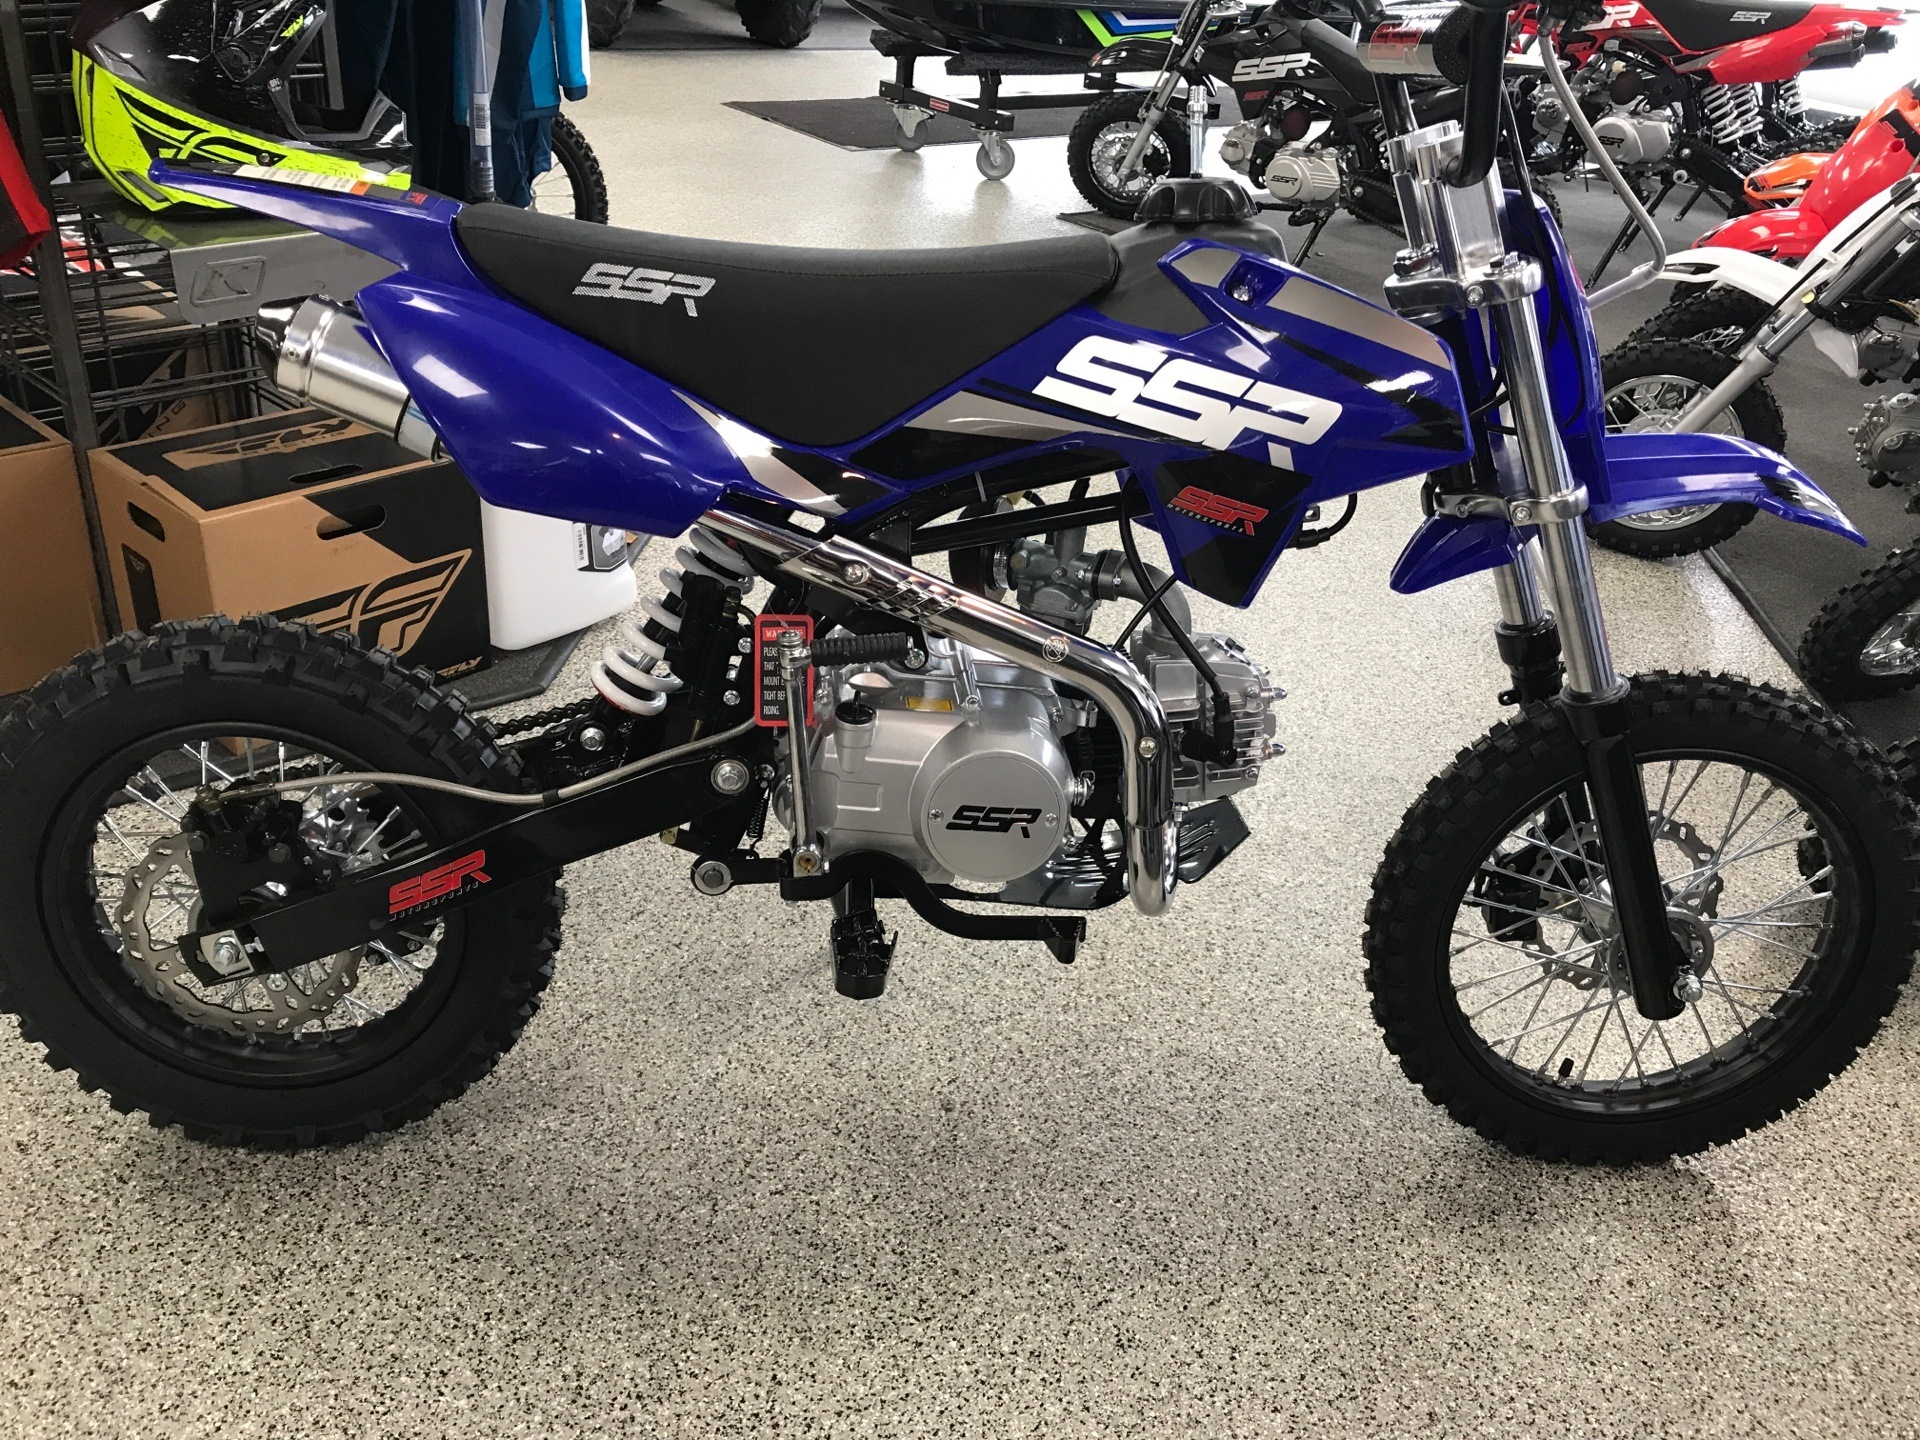 New 2020 ssr motorsports sr 125 manual motorcycles in coloma, mi.